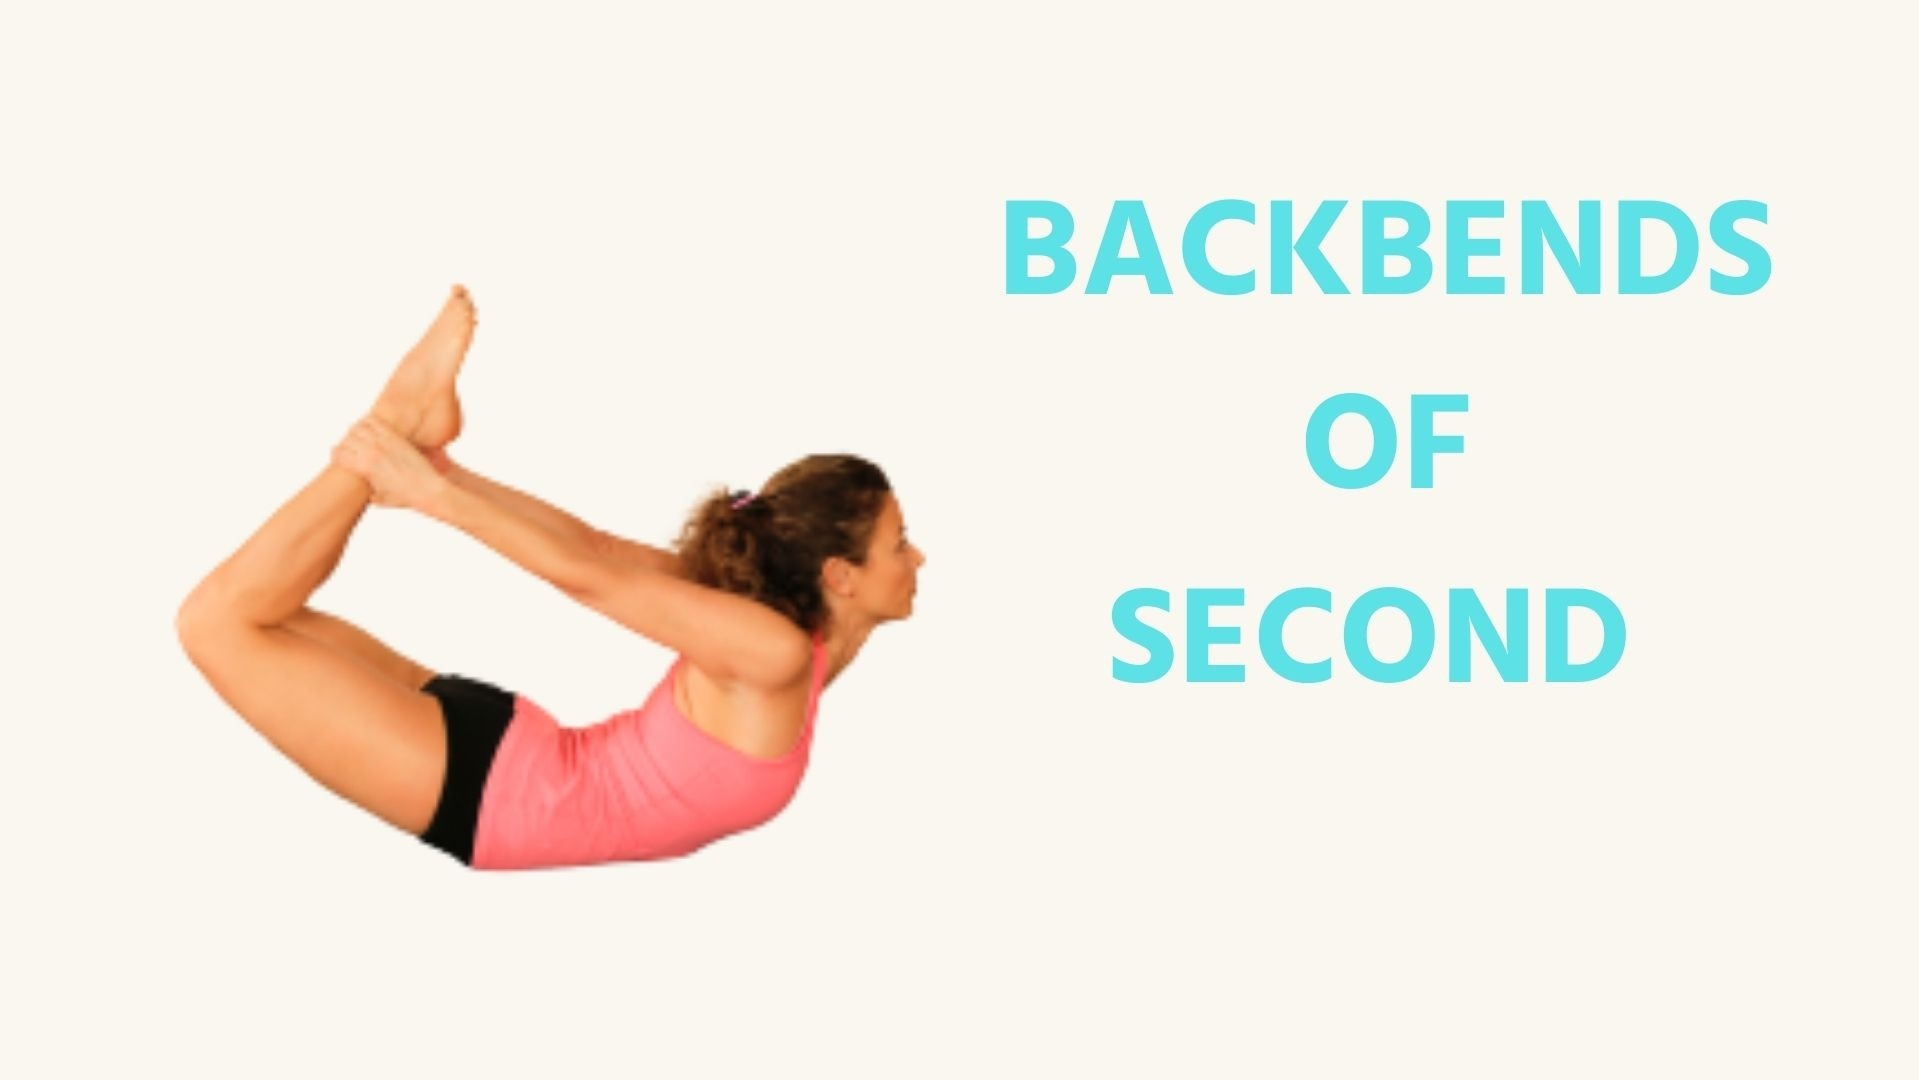 Backbends of Second